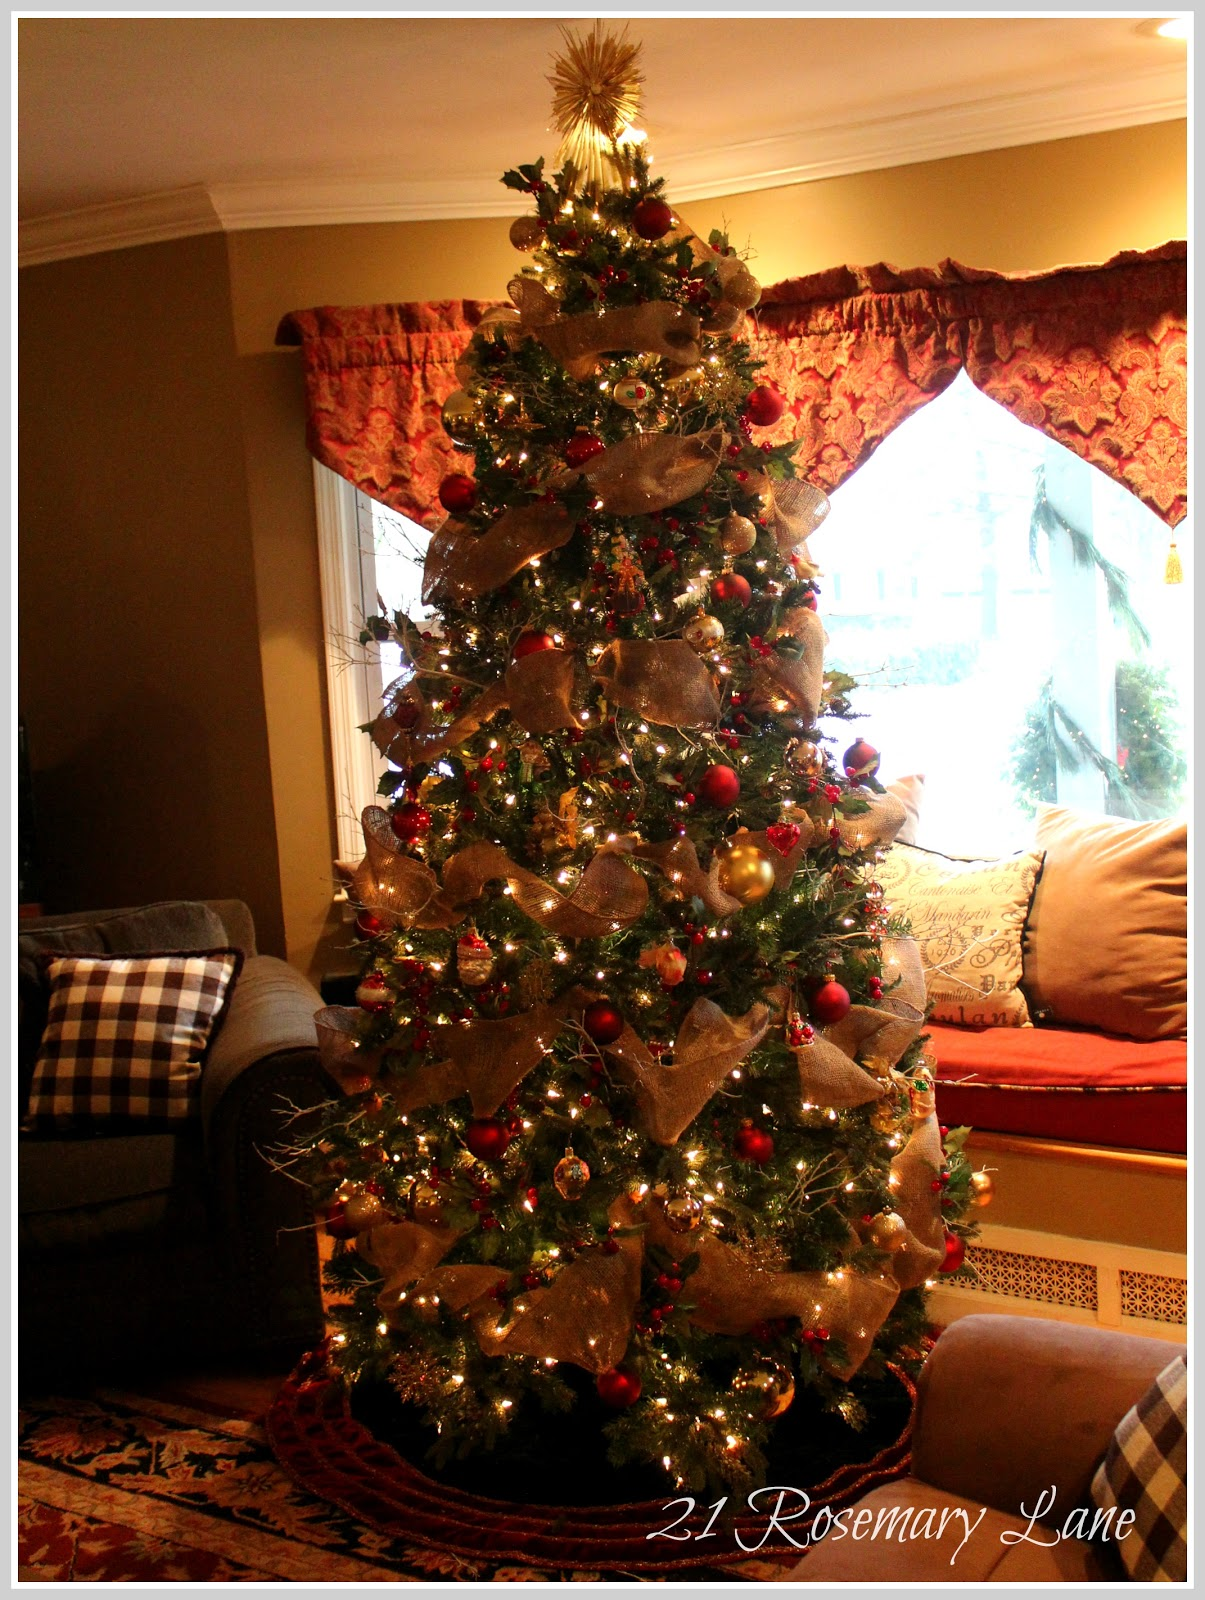 21 Rosemary Lane: Presenting Our 2012 Christmas Tree